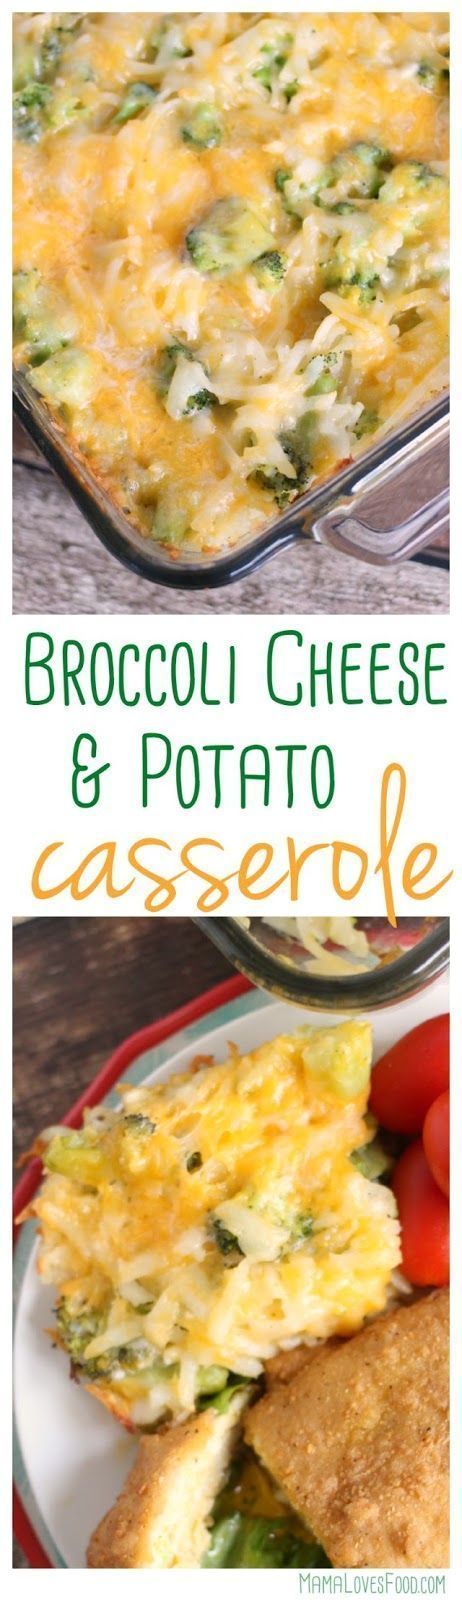 Broccoli Cheese Potato Casserole And Chicken Kiev- A -9862